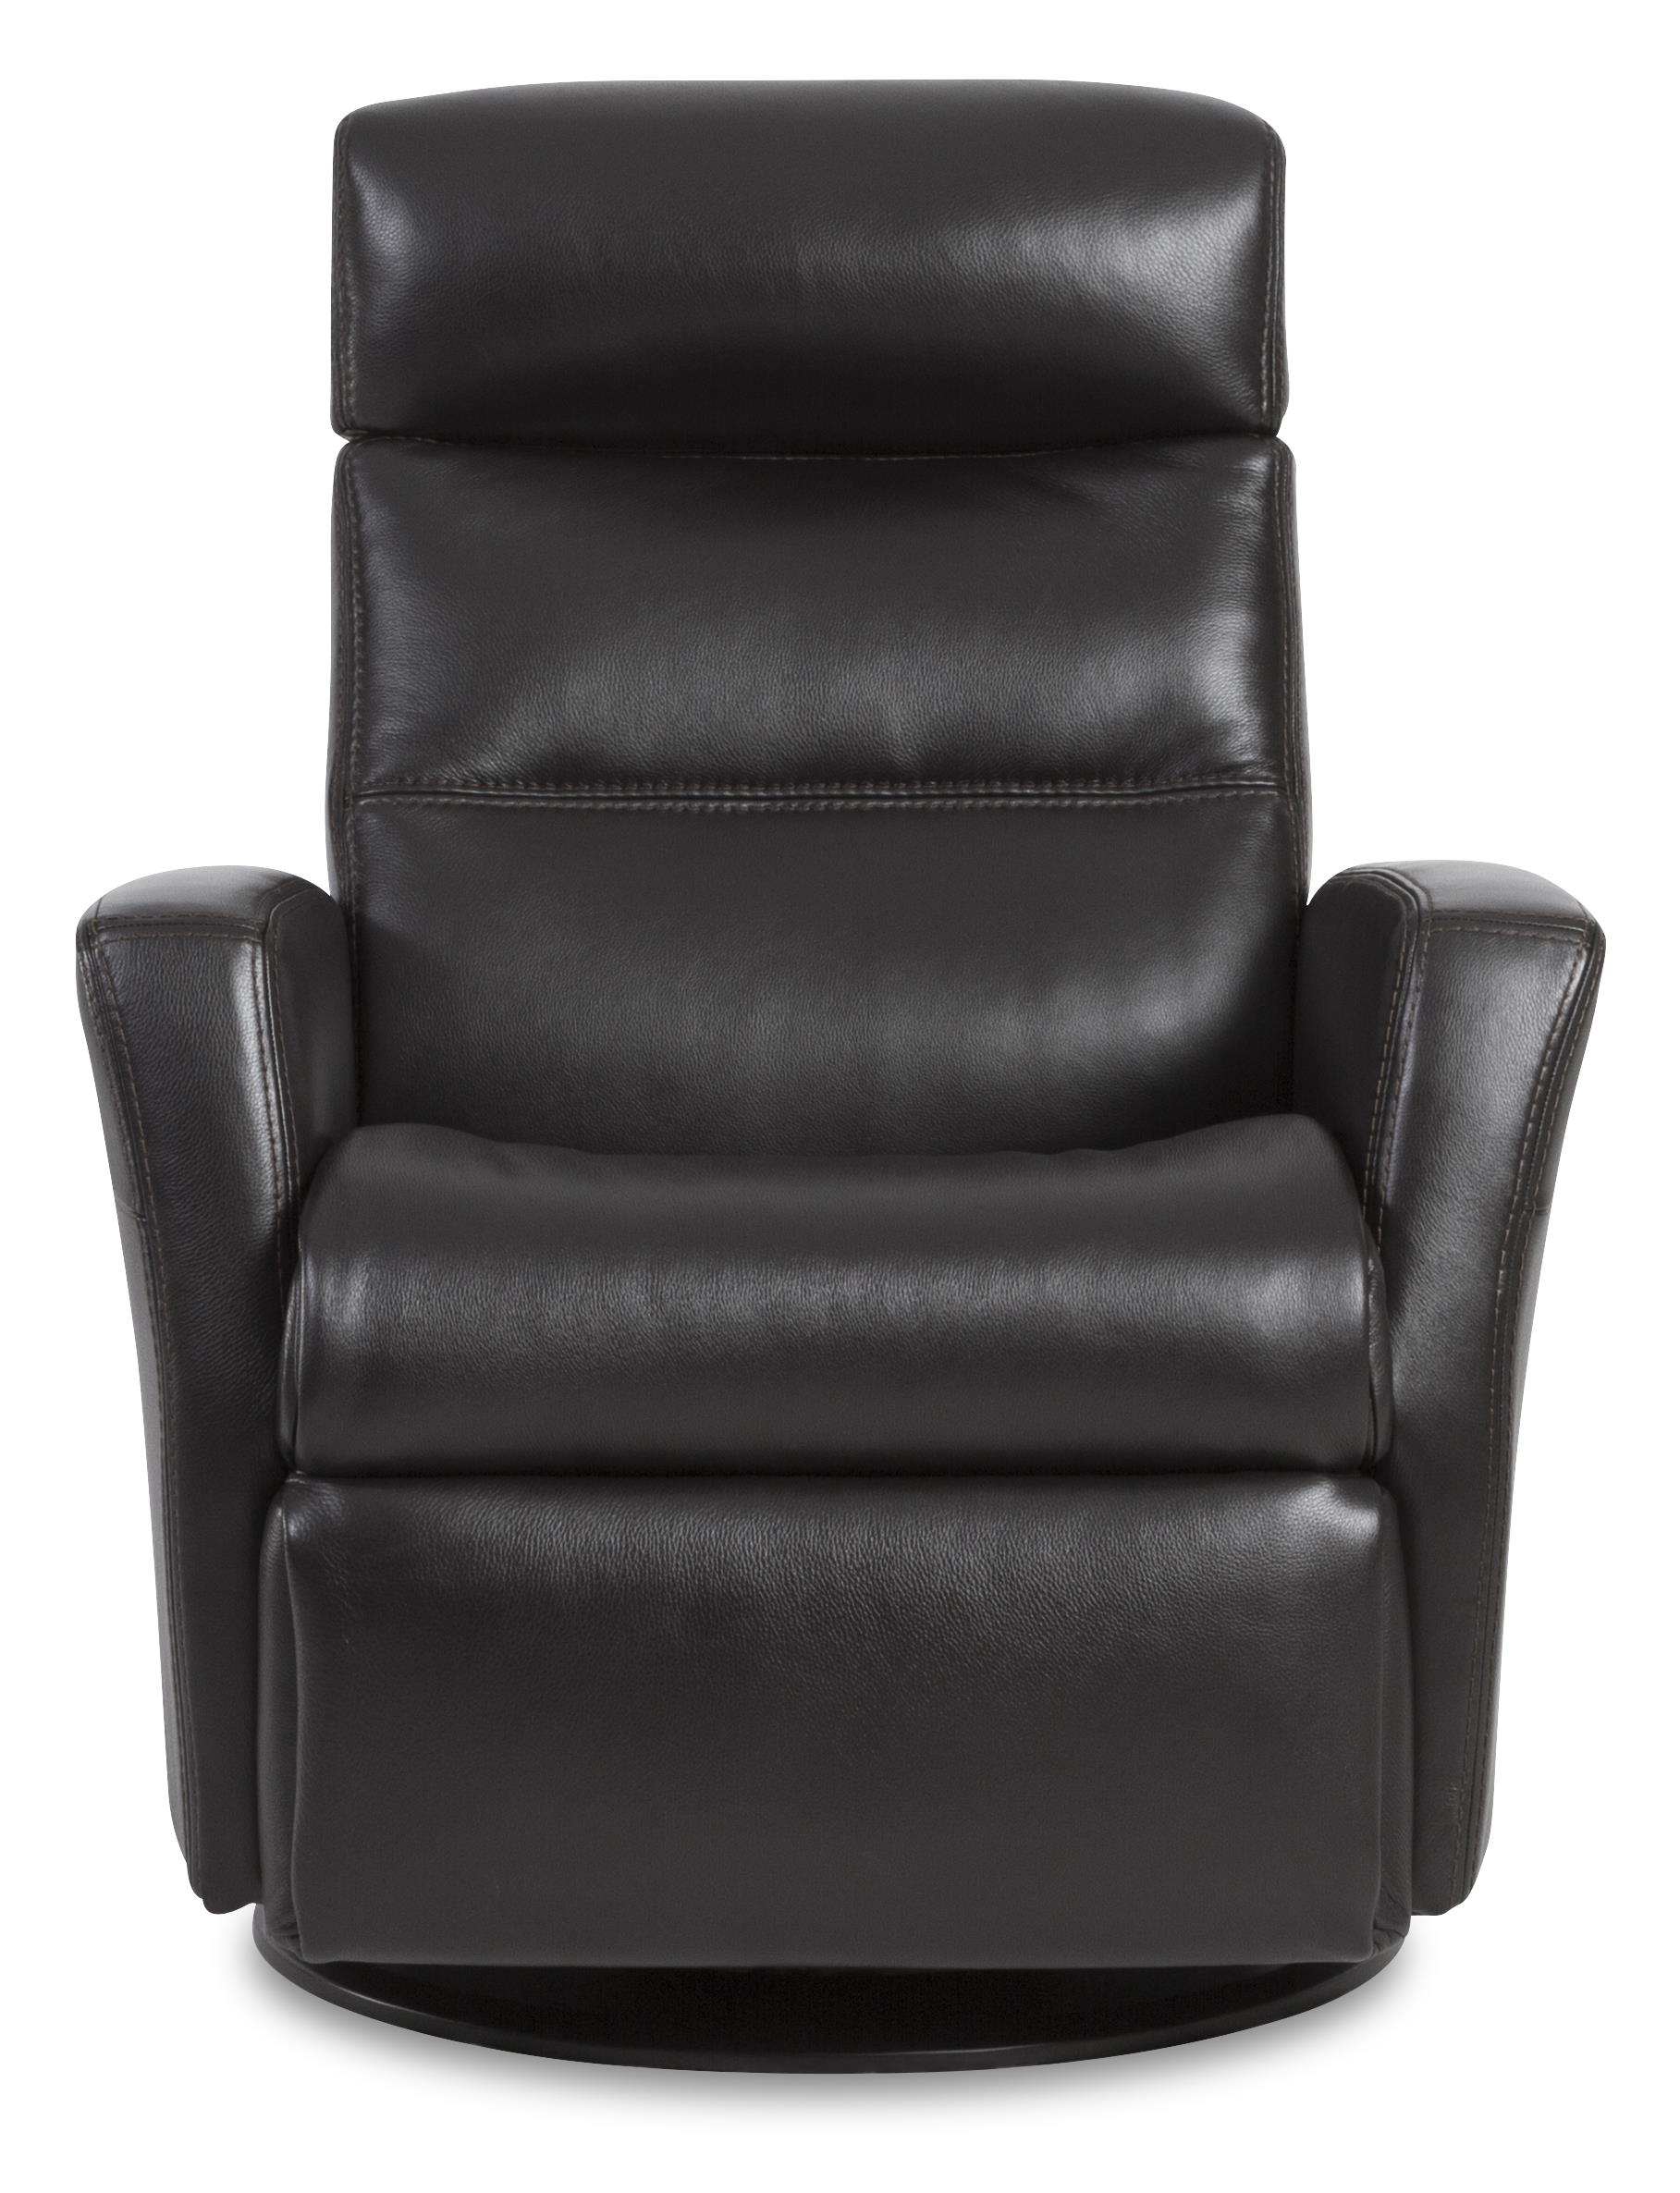 Divani Definition Divani Compact Size Manual Recliner With Swivel Glide And Rock By Img Norway At Stoney Creek Furniture